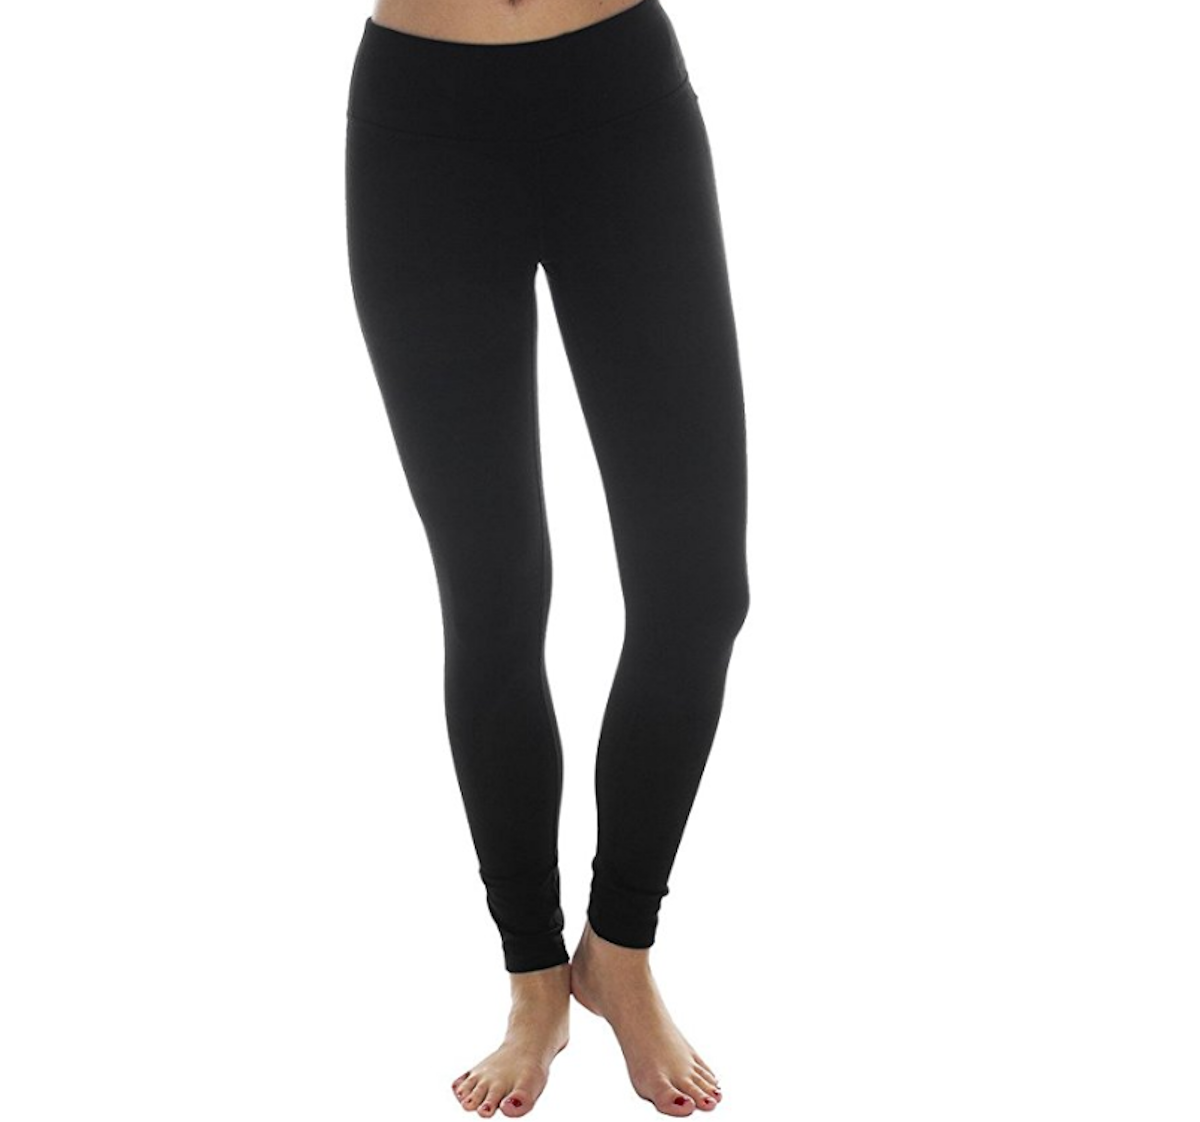 10 Functional & Flattering Black Leggings You Can Buy on Amazon ...